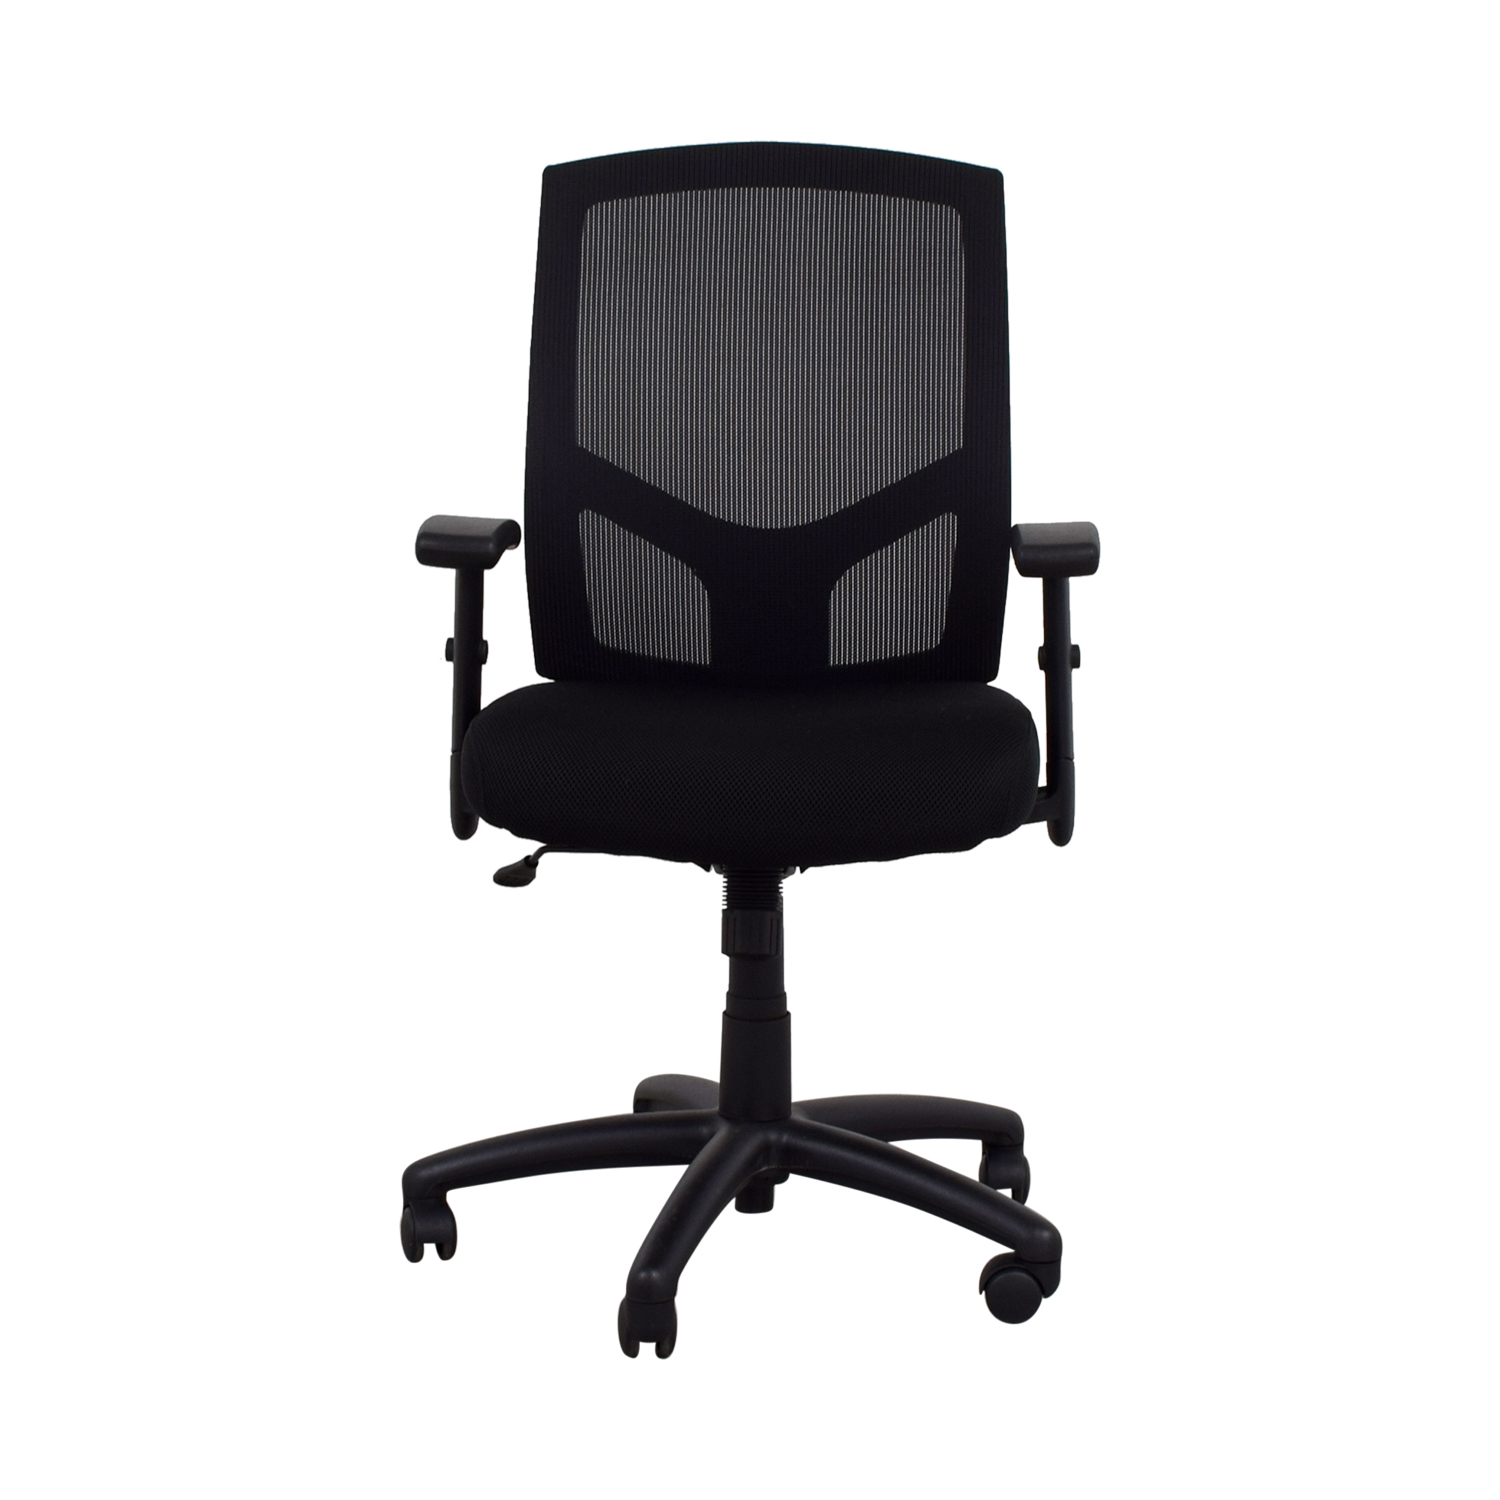 Offices to Go Offices to Go Black Office Chair used